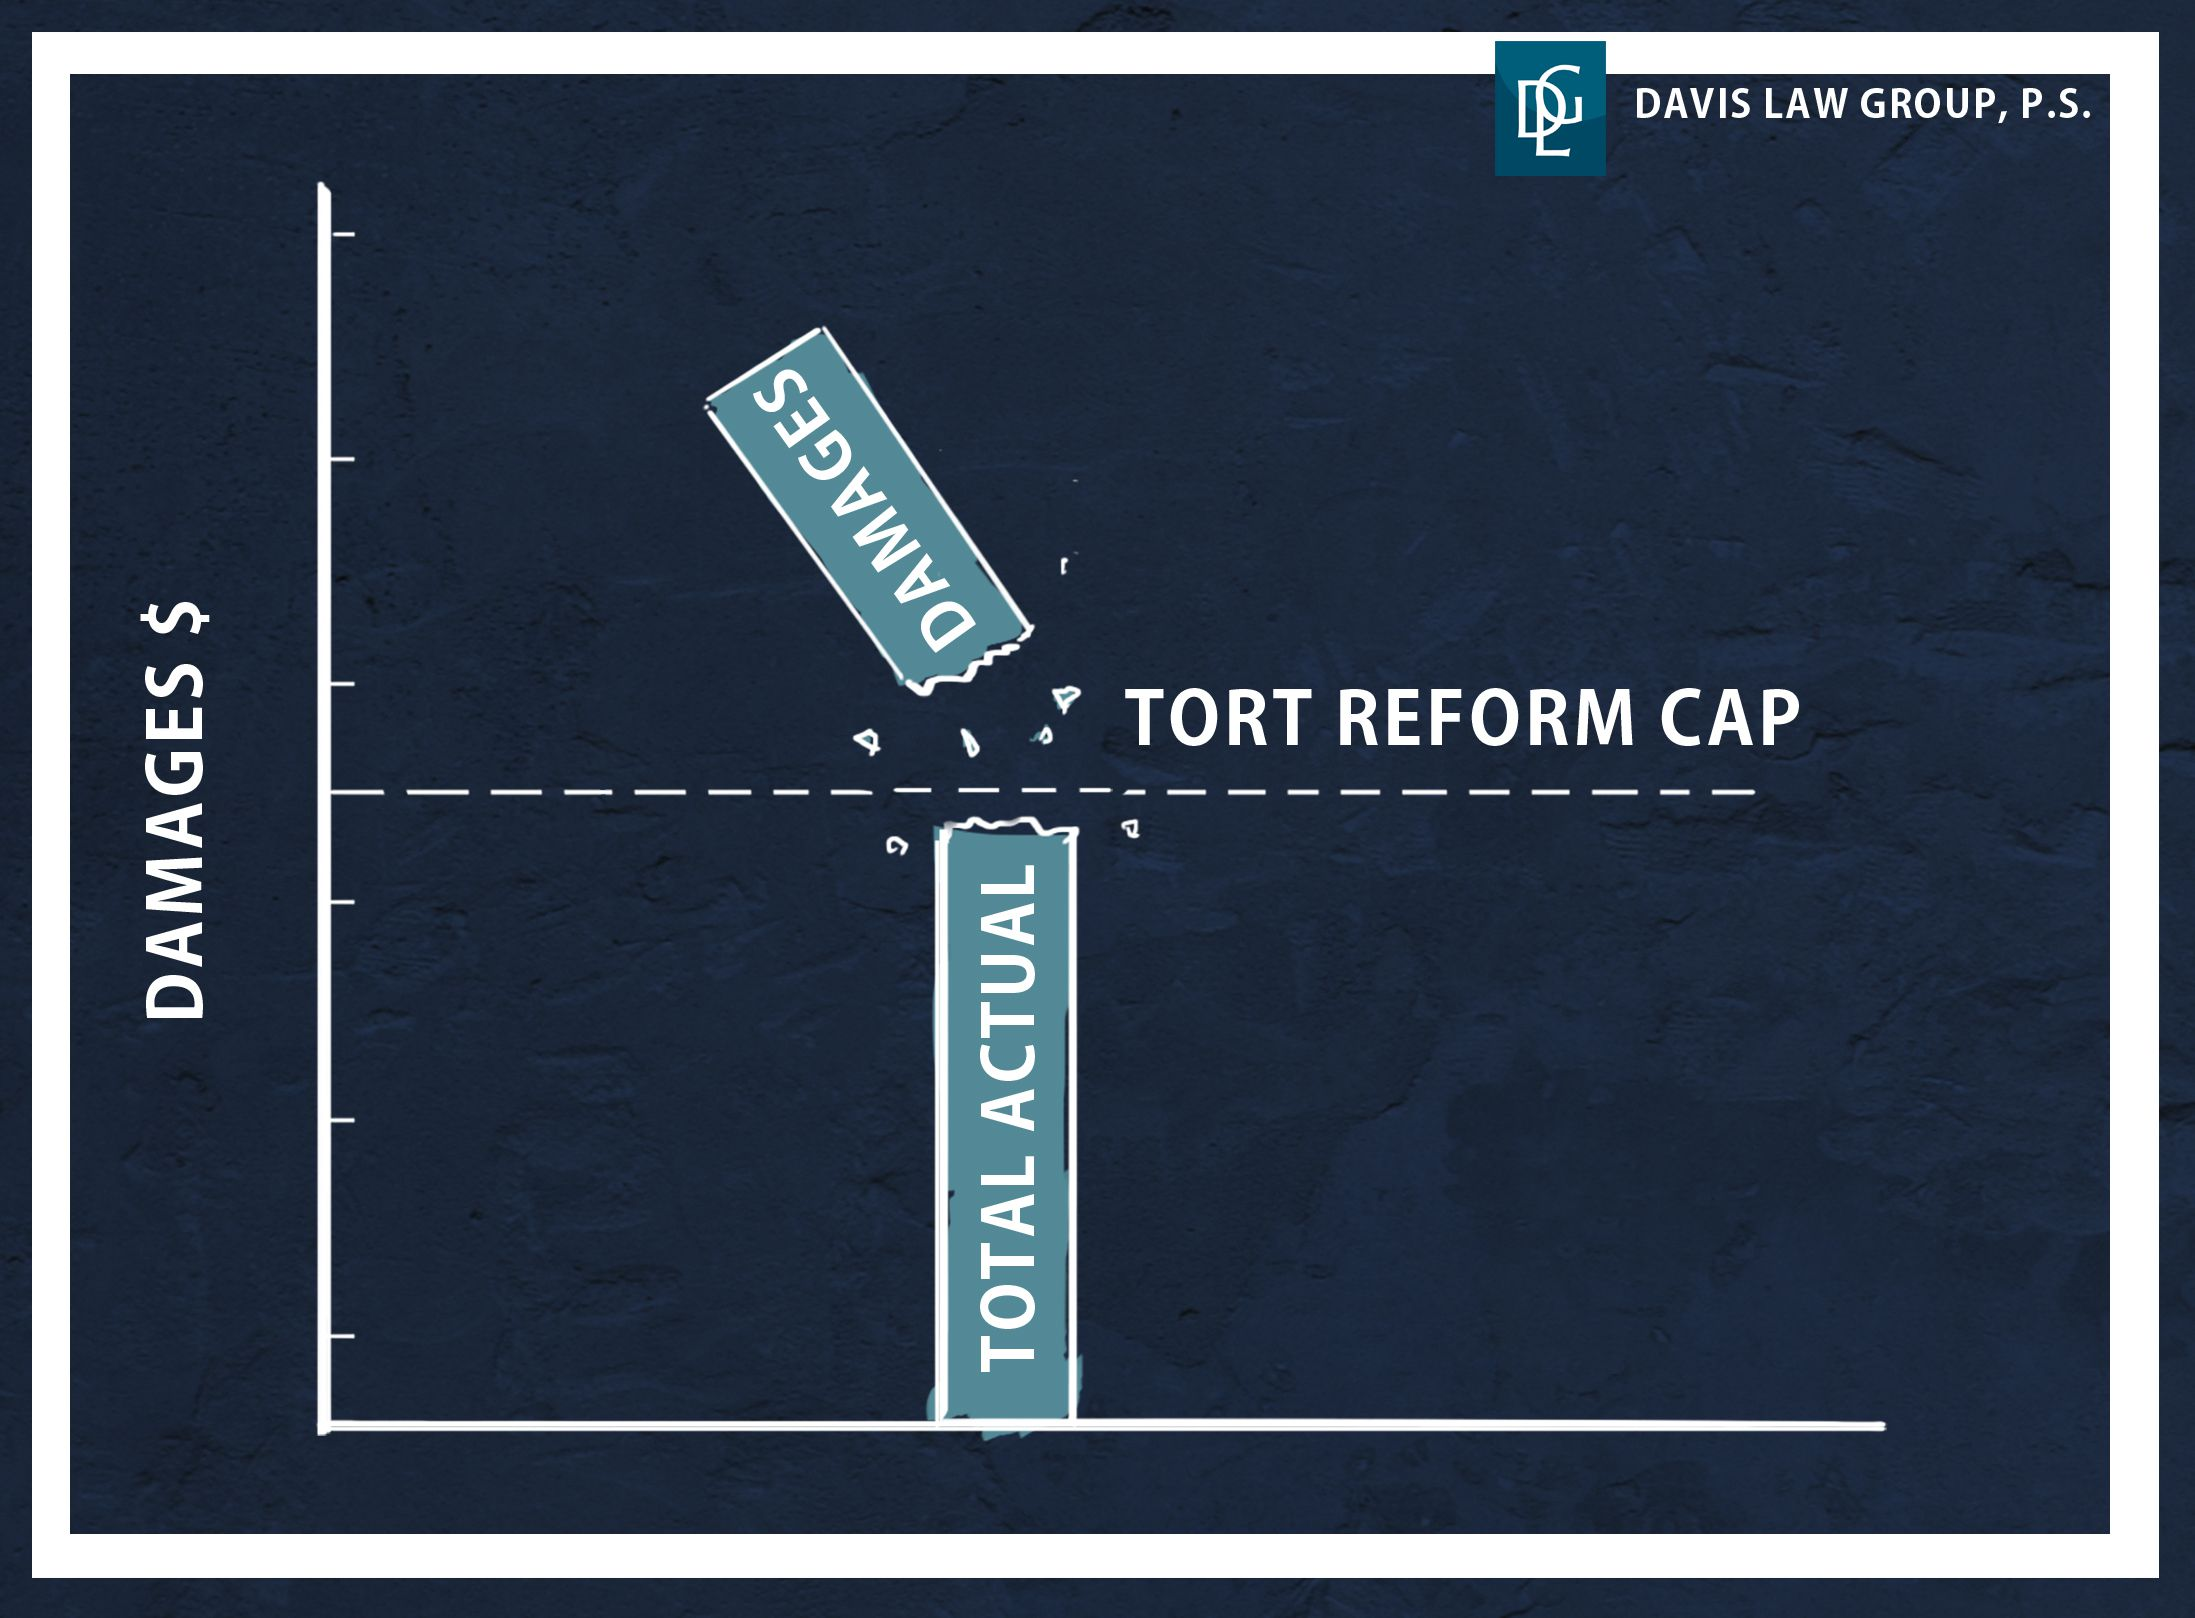 Tort reform in Washington State